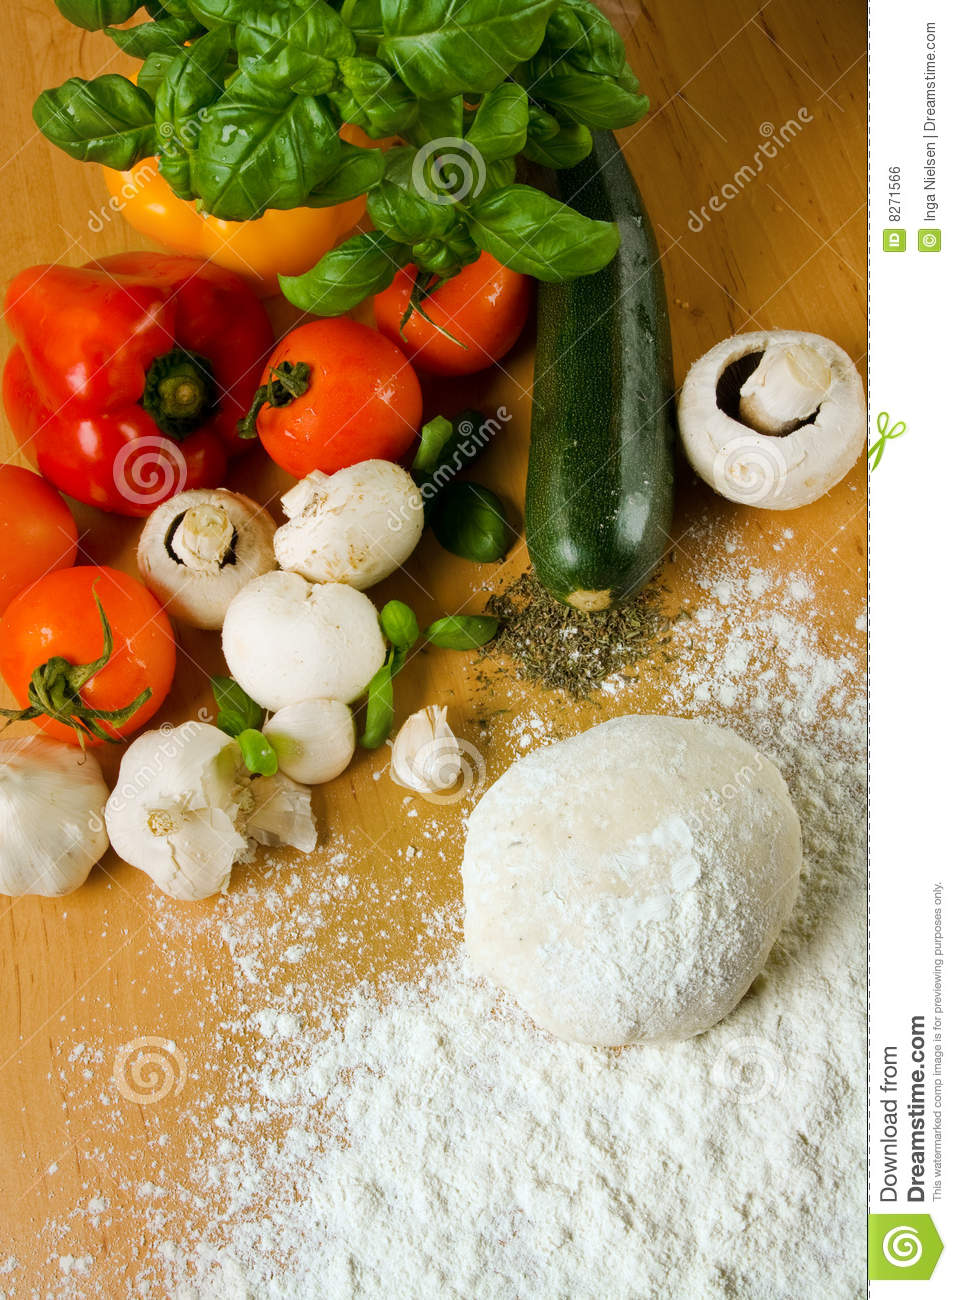 Pizza Ingredients Royalty Free Stock Image - Image: 8271566